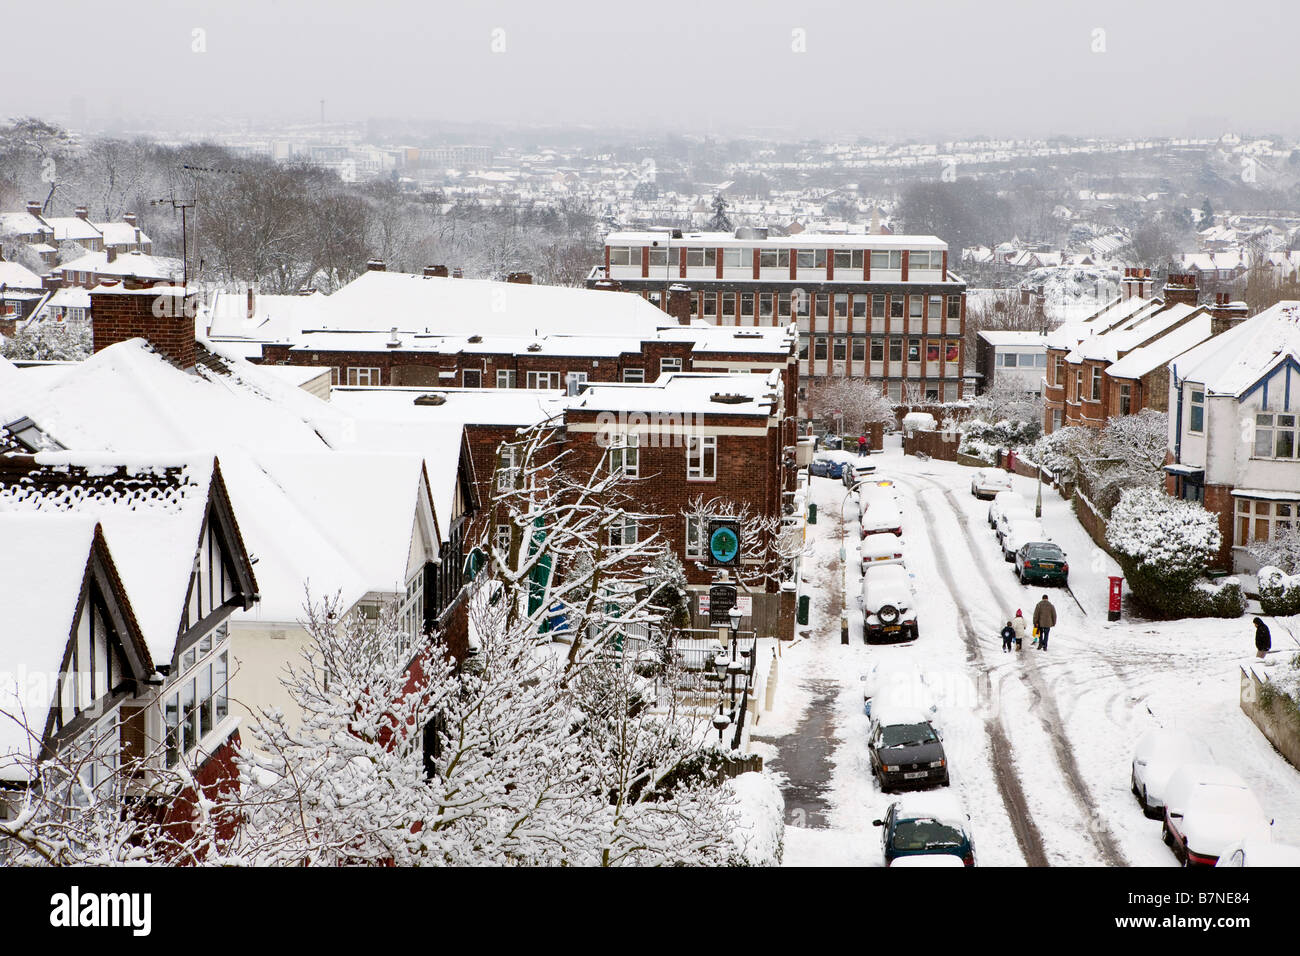 A Street in north London on the 2nd of February 2009 after the heaviest snow fall in London for 18 years - Stock Image